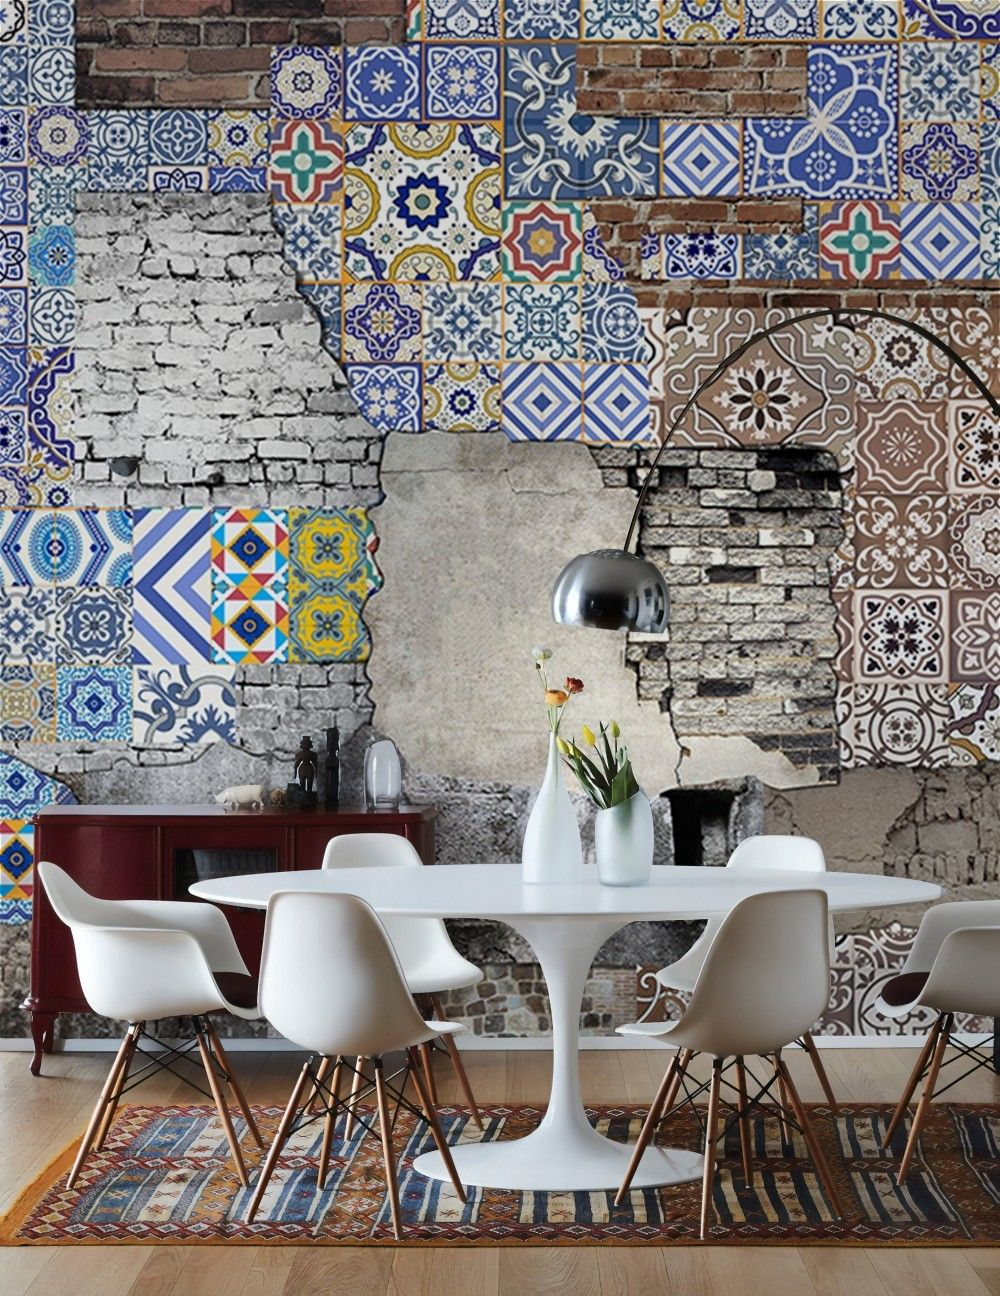 3d Look Chinoiserie And Brick Wall Wallpaper Mural Brick Wall Wallpaper Wall Wallpaper Wall Murals Bedroom